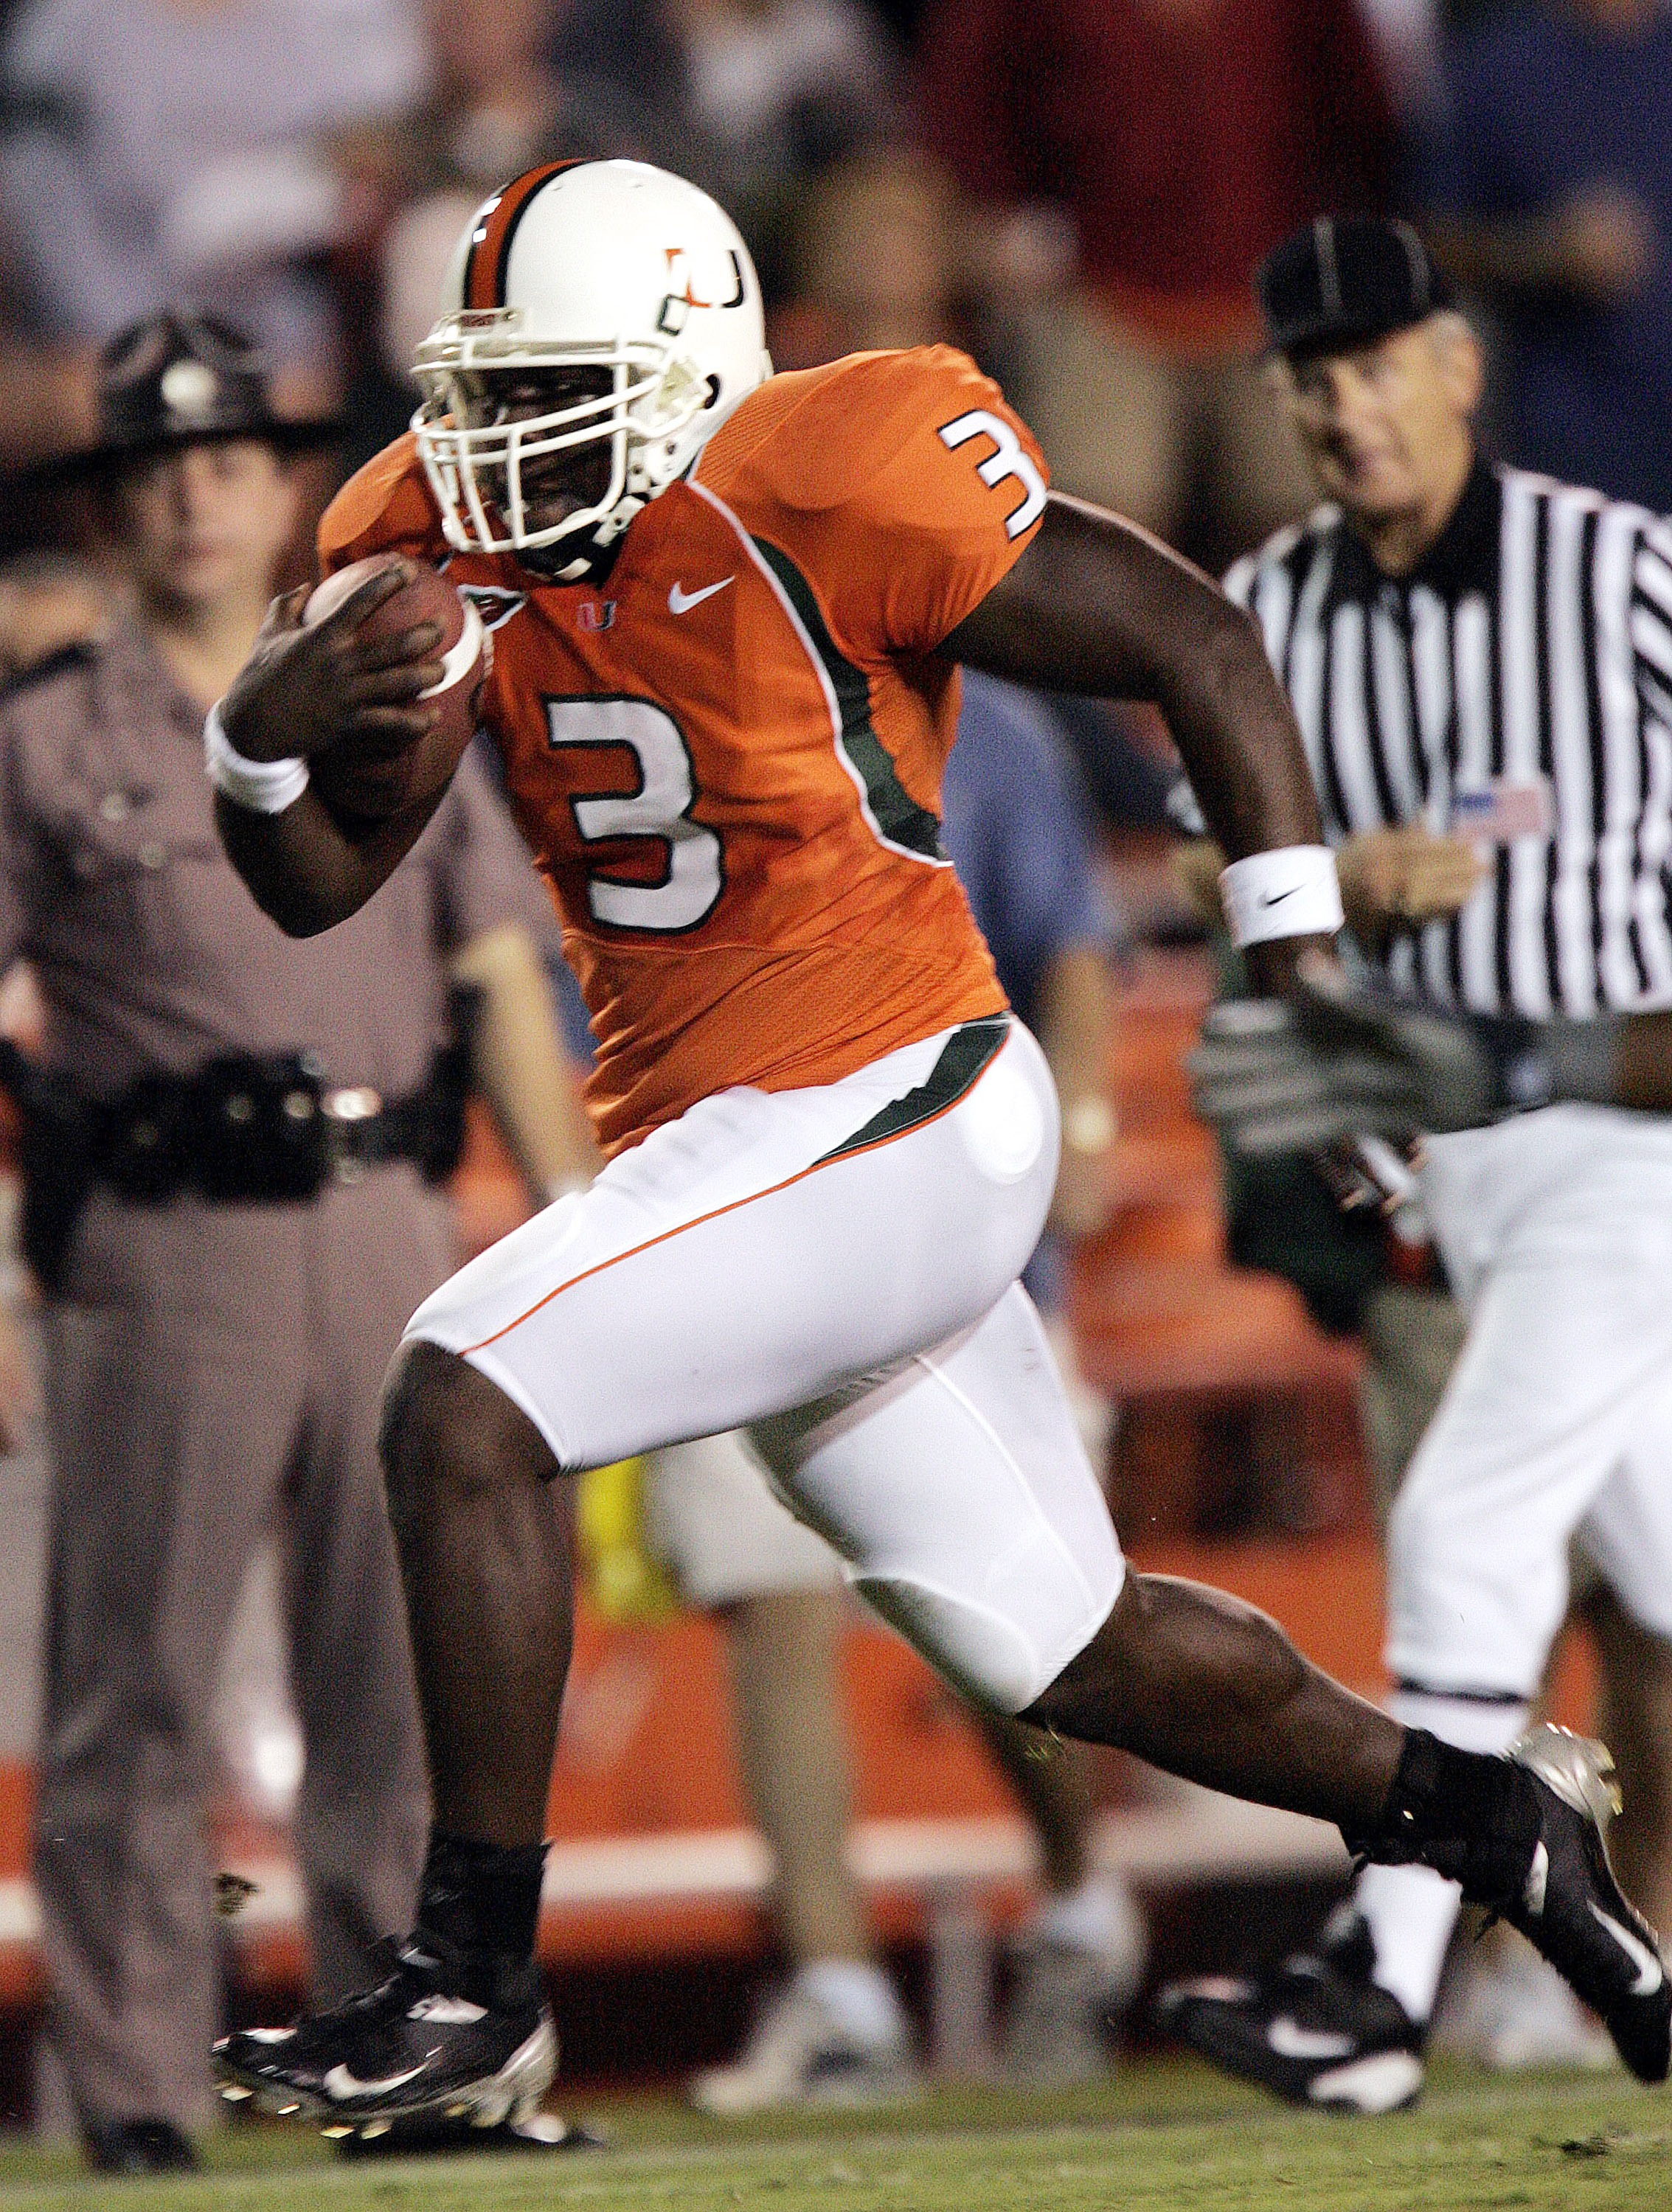 MIAMI - NOVEMBER 6: Running back Frank Gore #3 of the Miami Hurricanes heads into the end zone for a touchdown against the Clemson Tigers in the first half on November 6, 2004 at the Orange Bowl in Miami, Florida. (Photo by Eliot J. Schechter/Getty Images